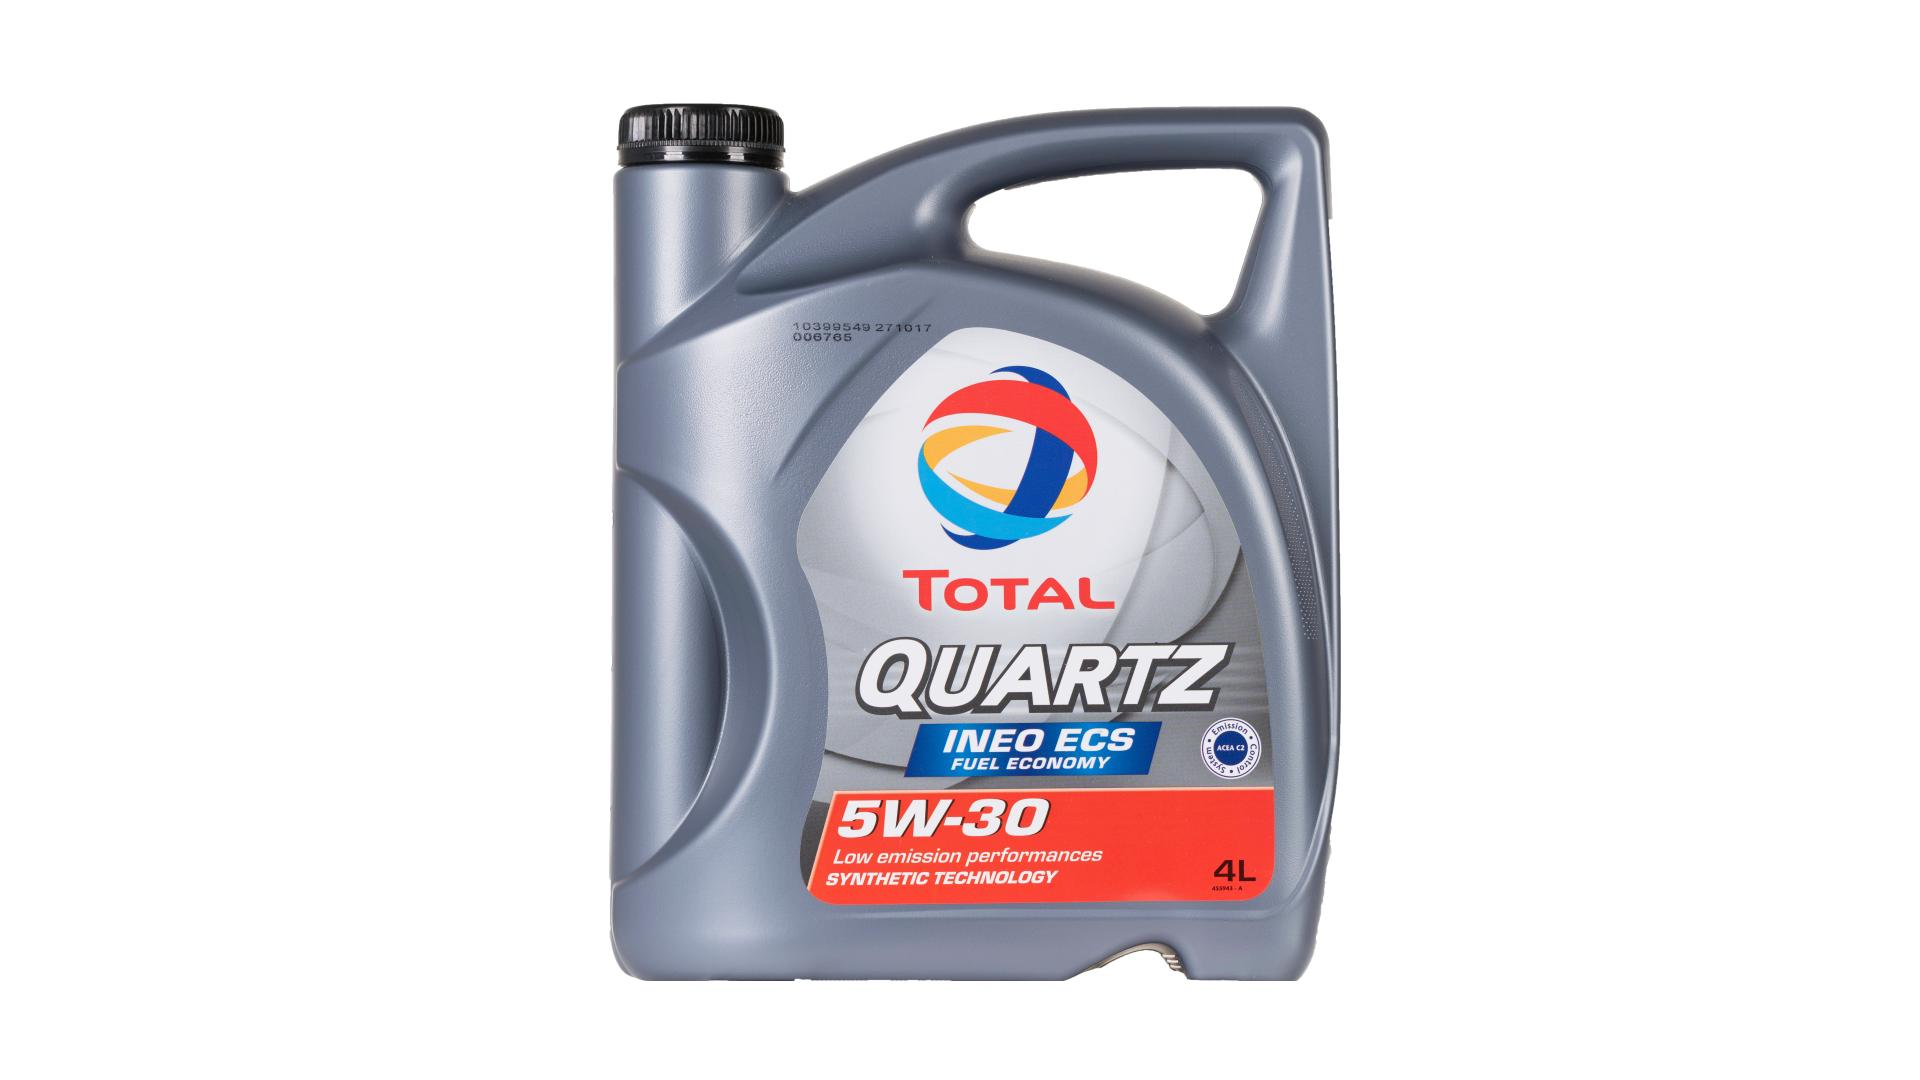 Total 5w-30 Quartz Ineo Ecs 4L (151510)